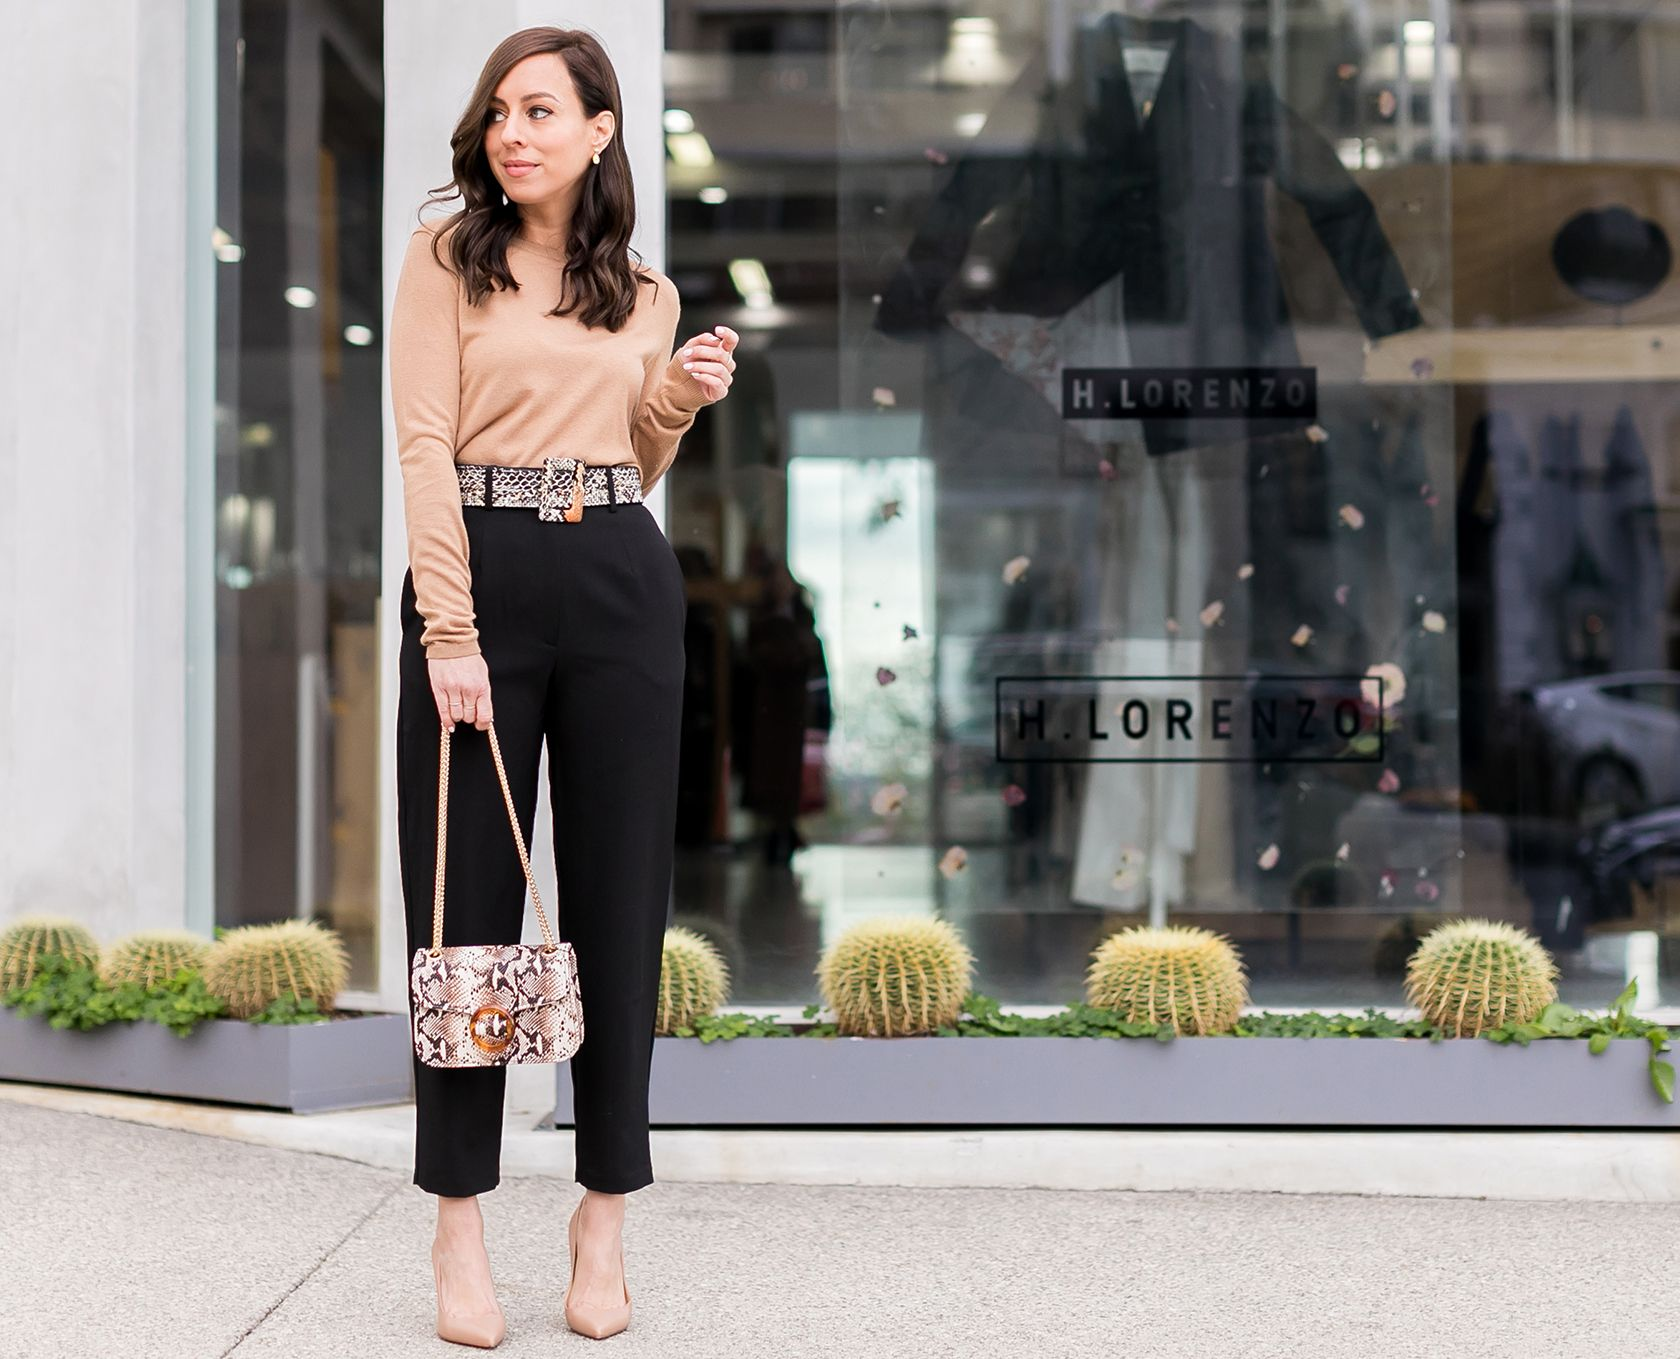 ed69c779d24d Sydne Style shows office outfit ideas in tan and black for classic style  #classic #python #snakeskin #louboutin @sydnesummer